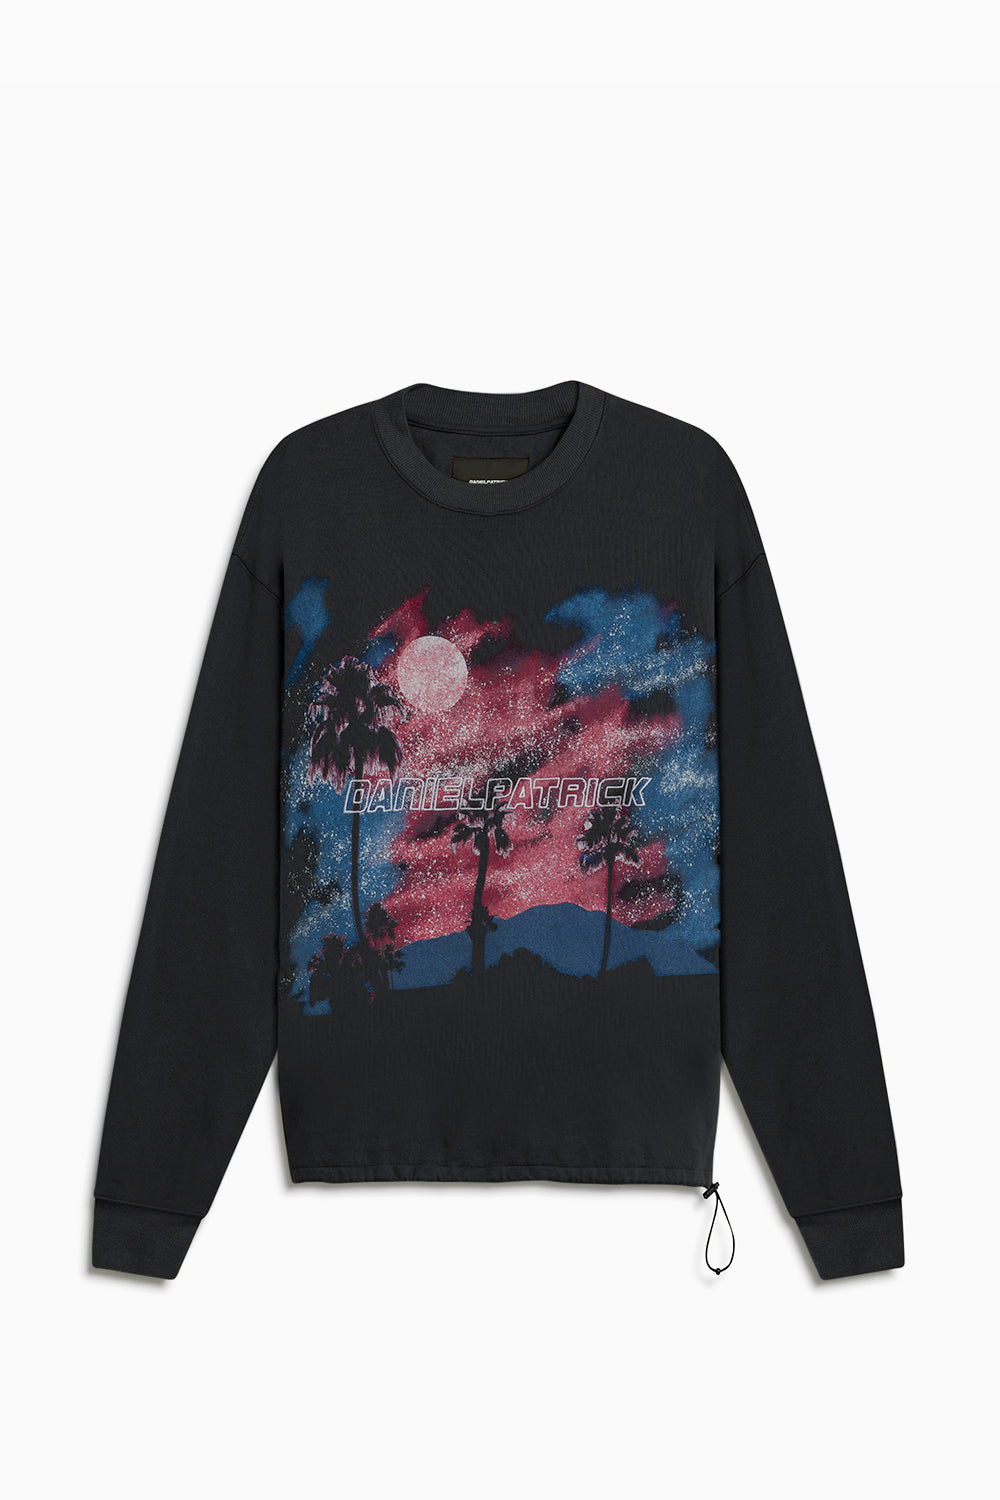 sunset bungee sweatshirt / washed black + pink + blue